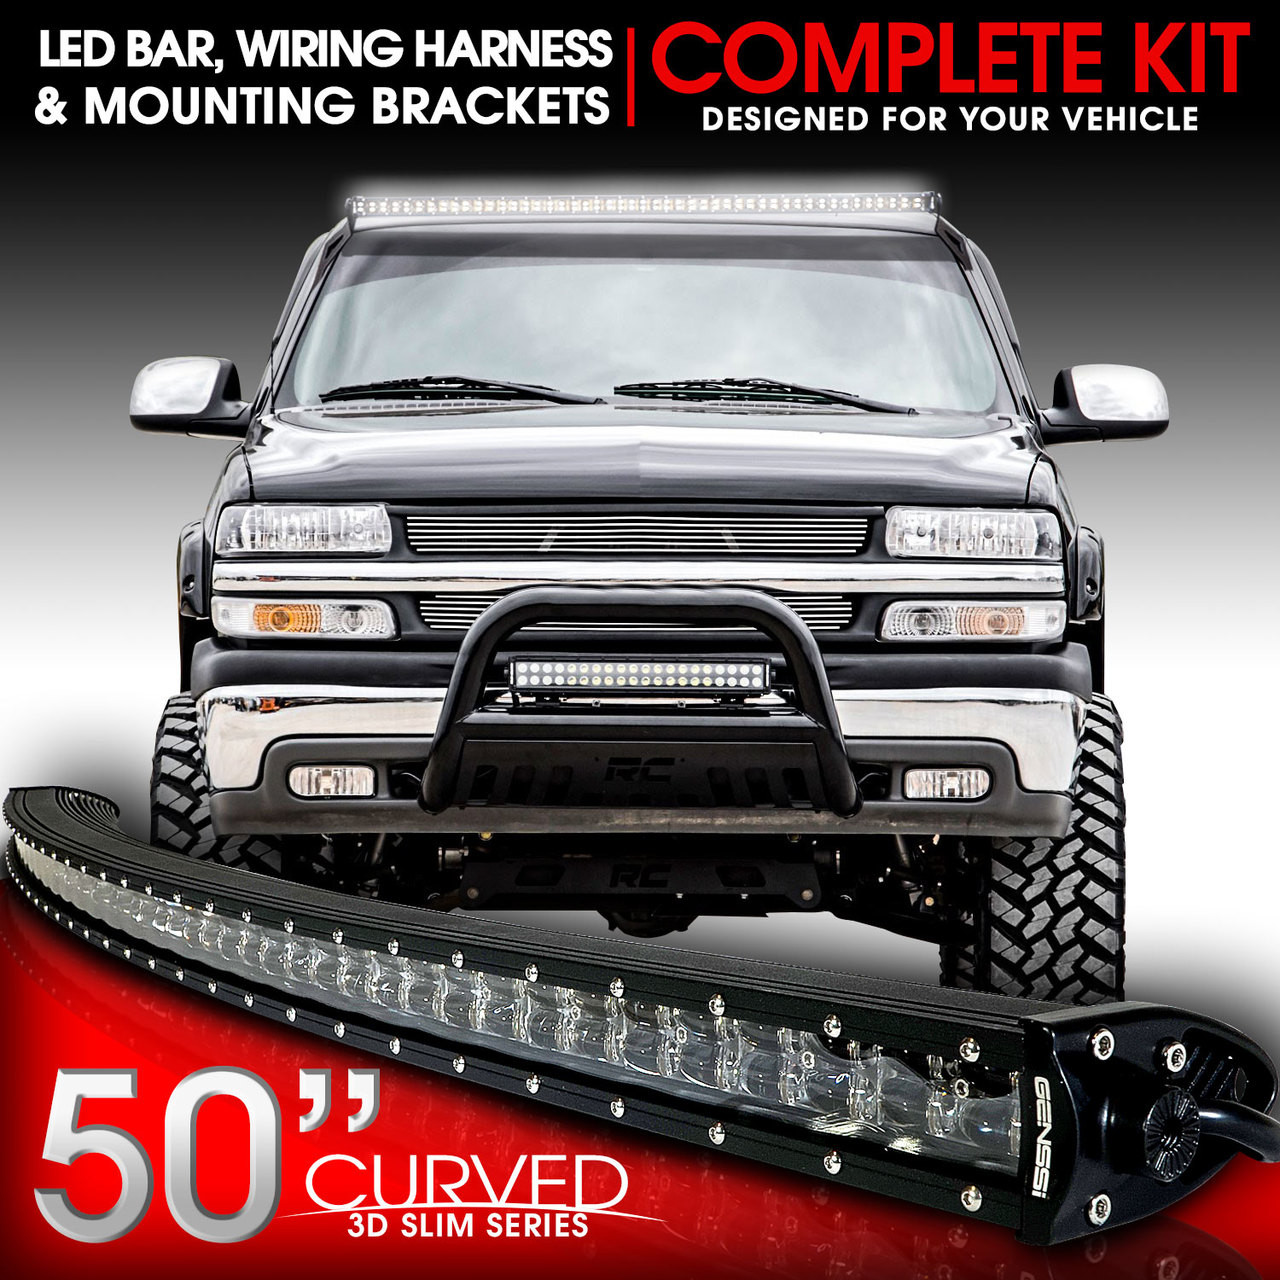 Tremendous Led Light Bar Curved 288W 50 Inches Bracket Wiring Harness Kit For Wiring Digital Resources Bemuashebarightsorg